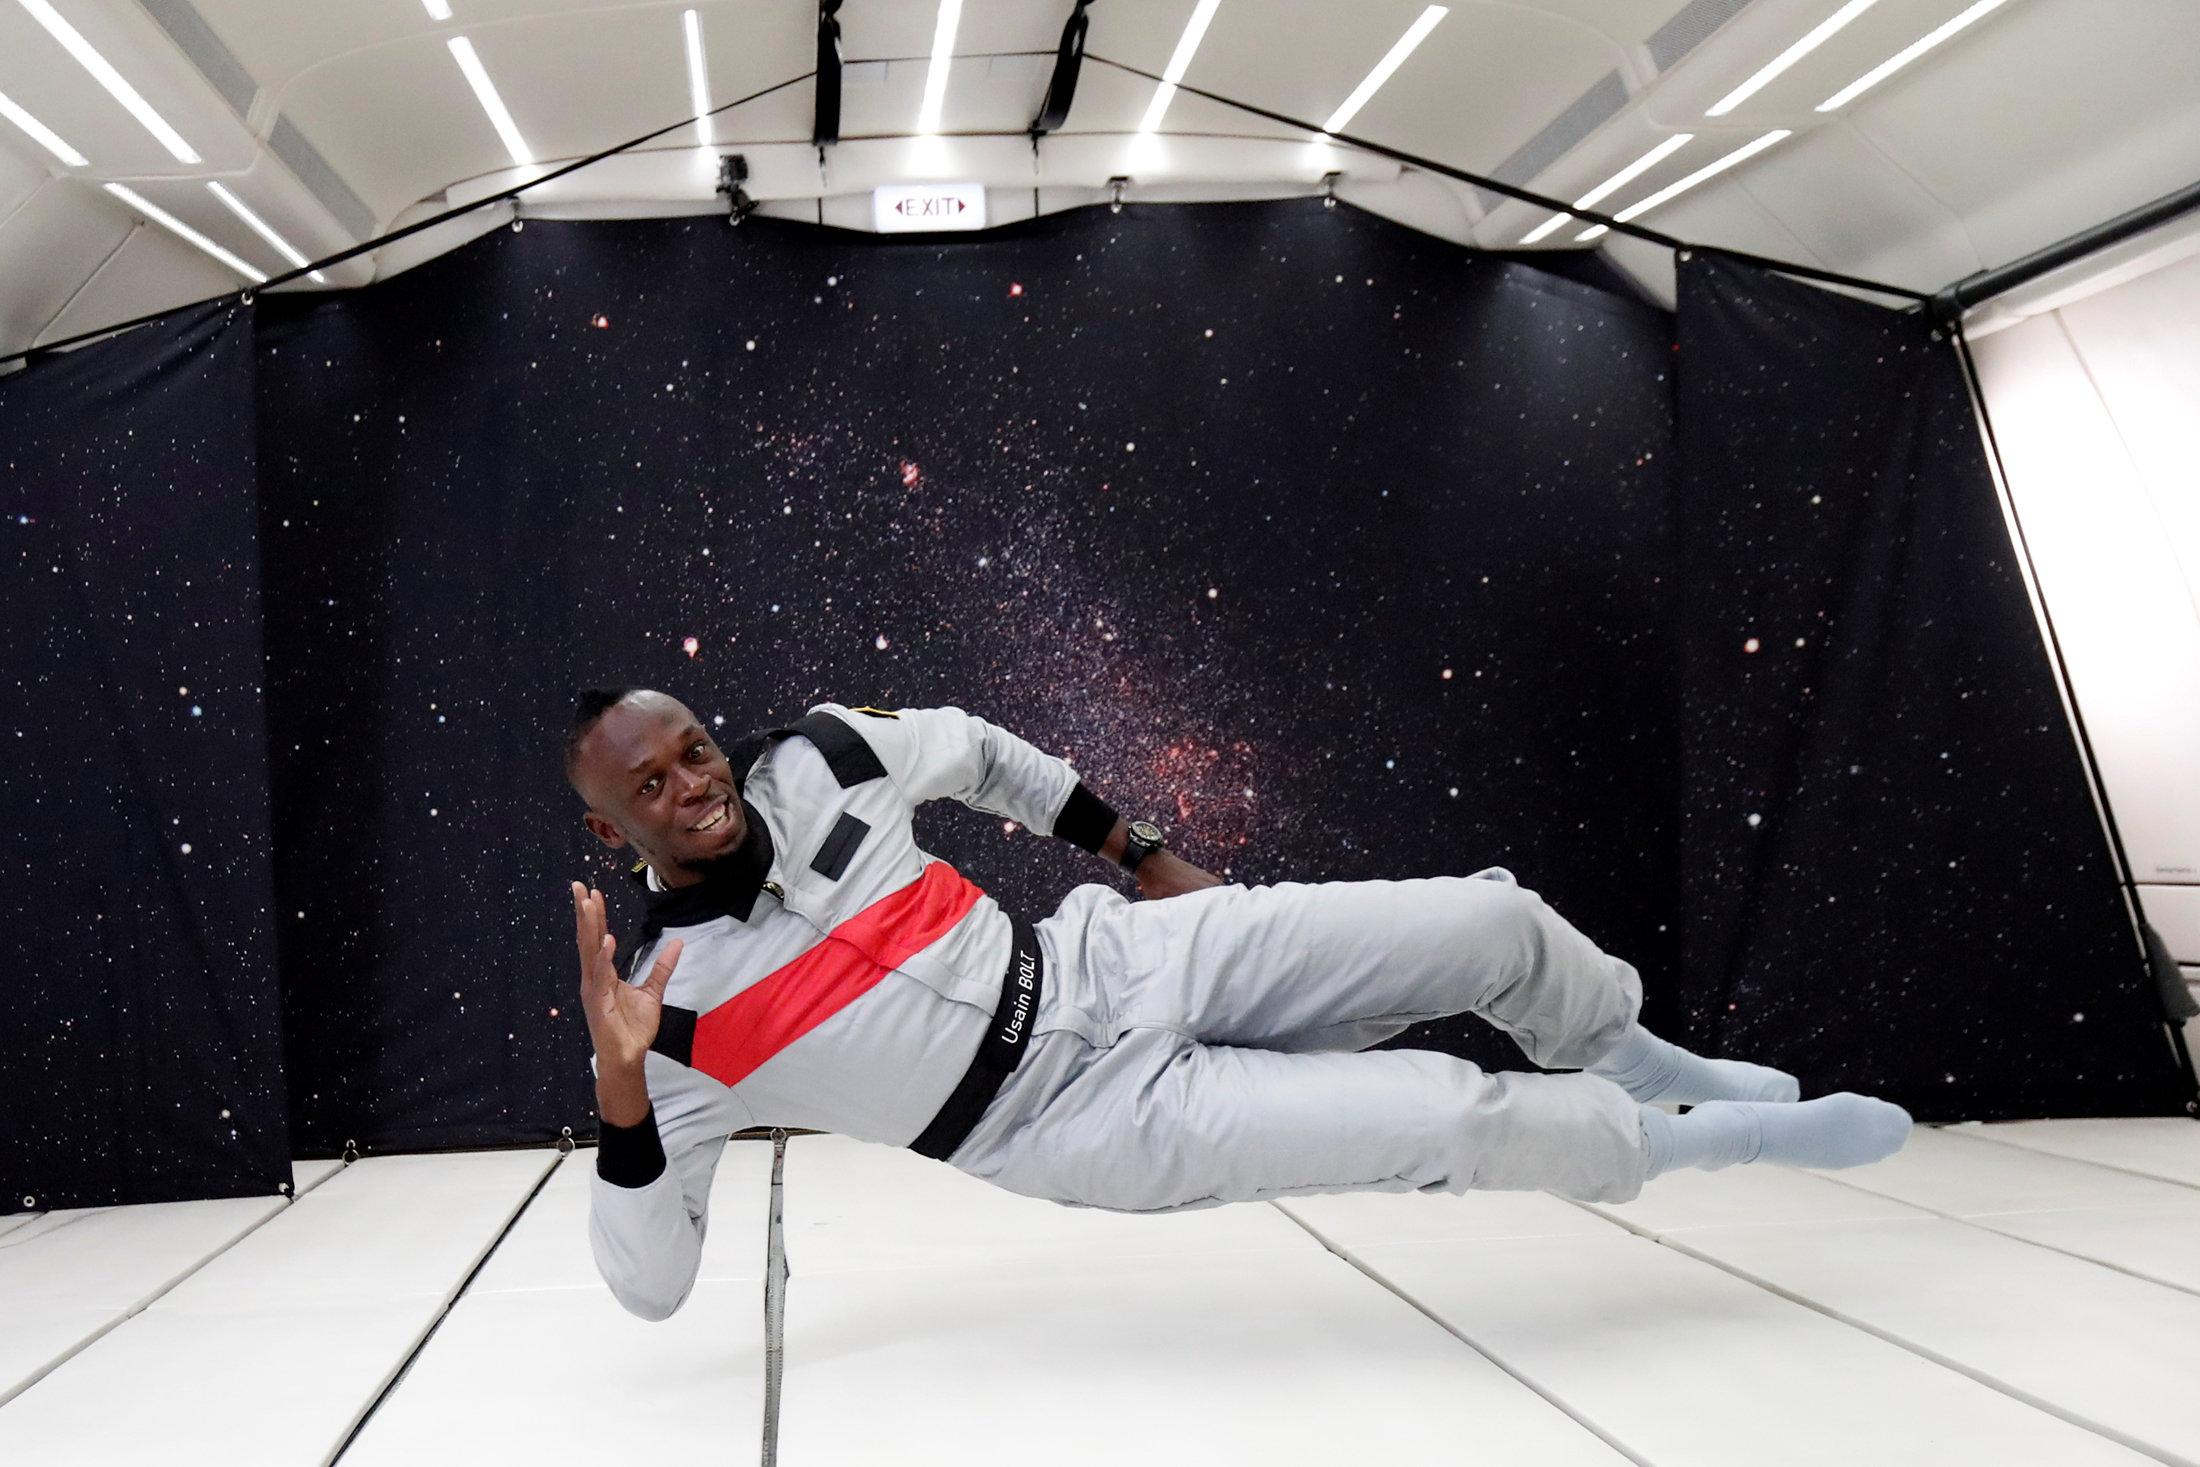 Usain Bolt shows it is worth the weightlessness as he enjoys time in zero gravity